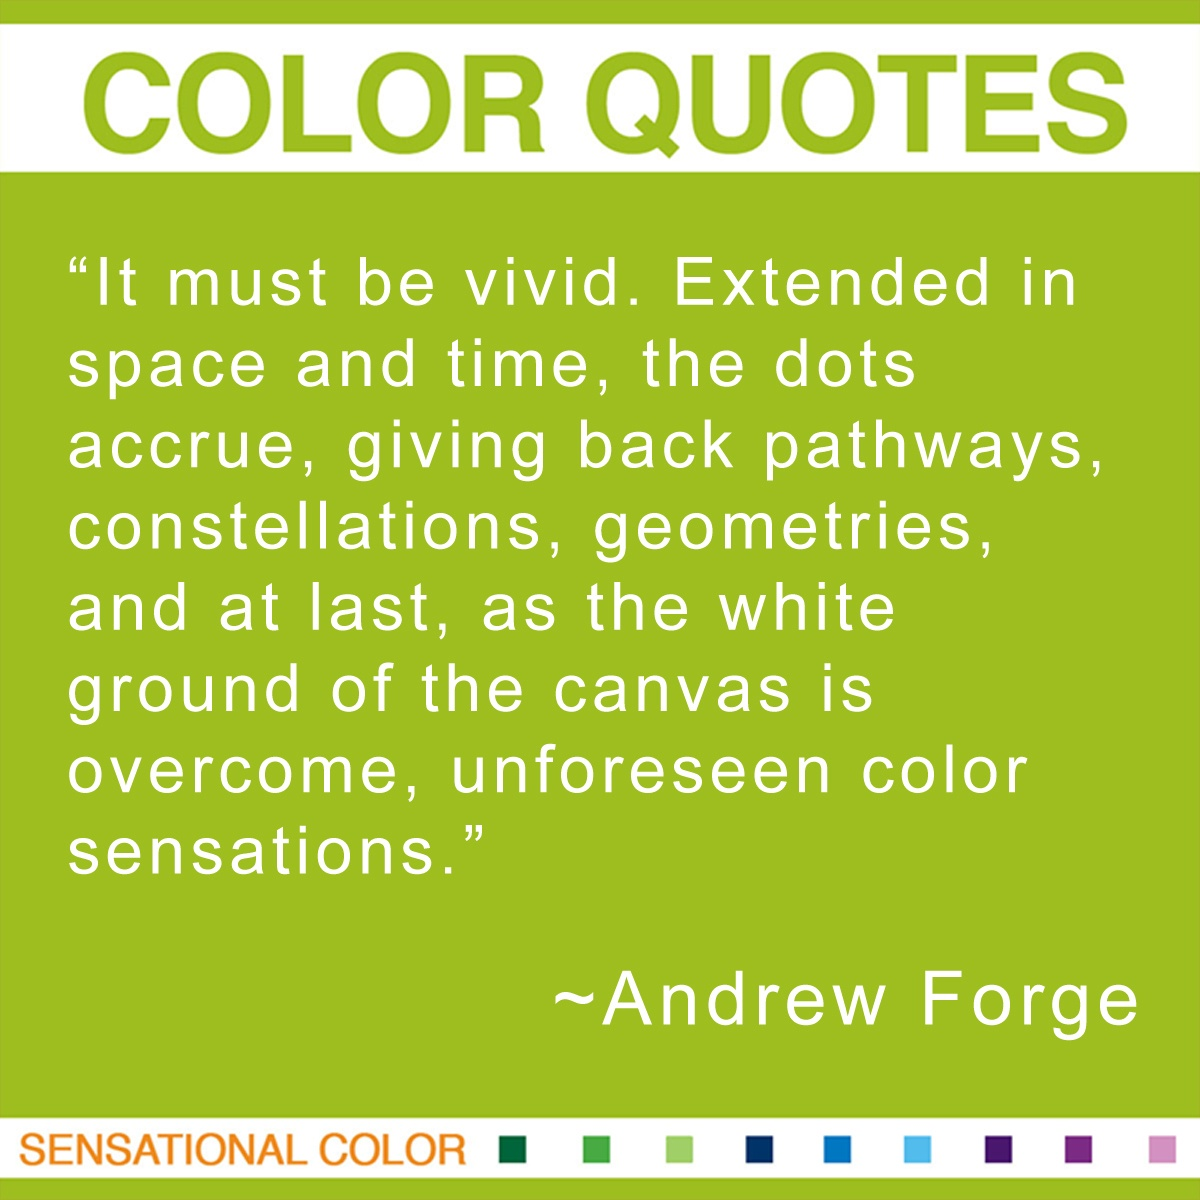 """It must be vivid. Extended in space and time, the dots accrue, giving back pathways, constellations, geometries, and at last, as the white ground of the canvas is overcome, unforeseen color sensations."" - Andrew Forge"